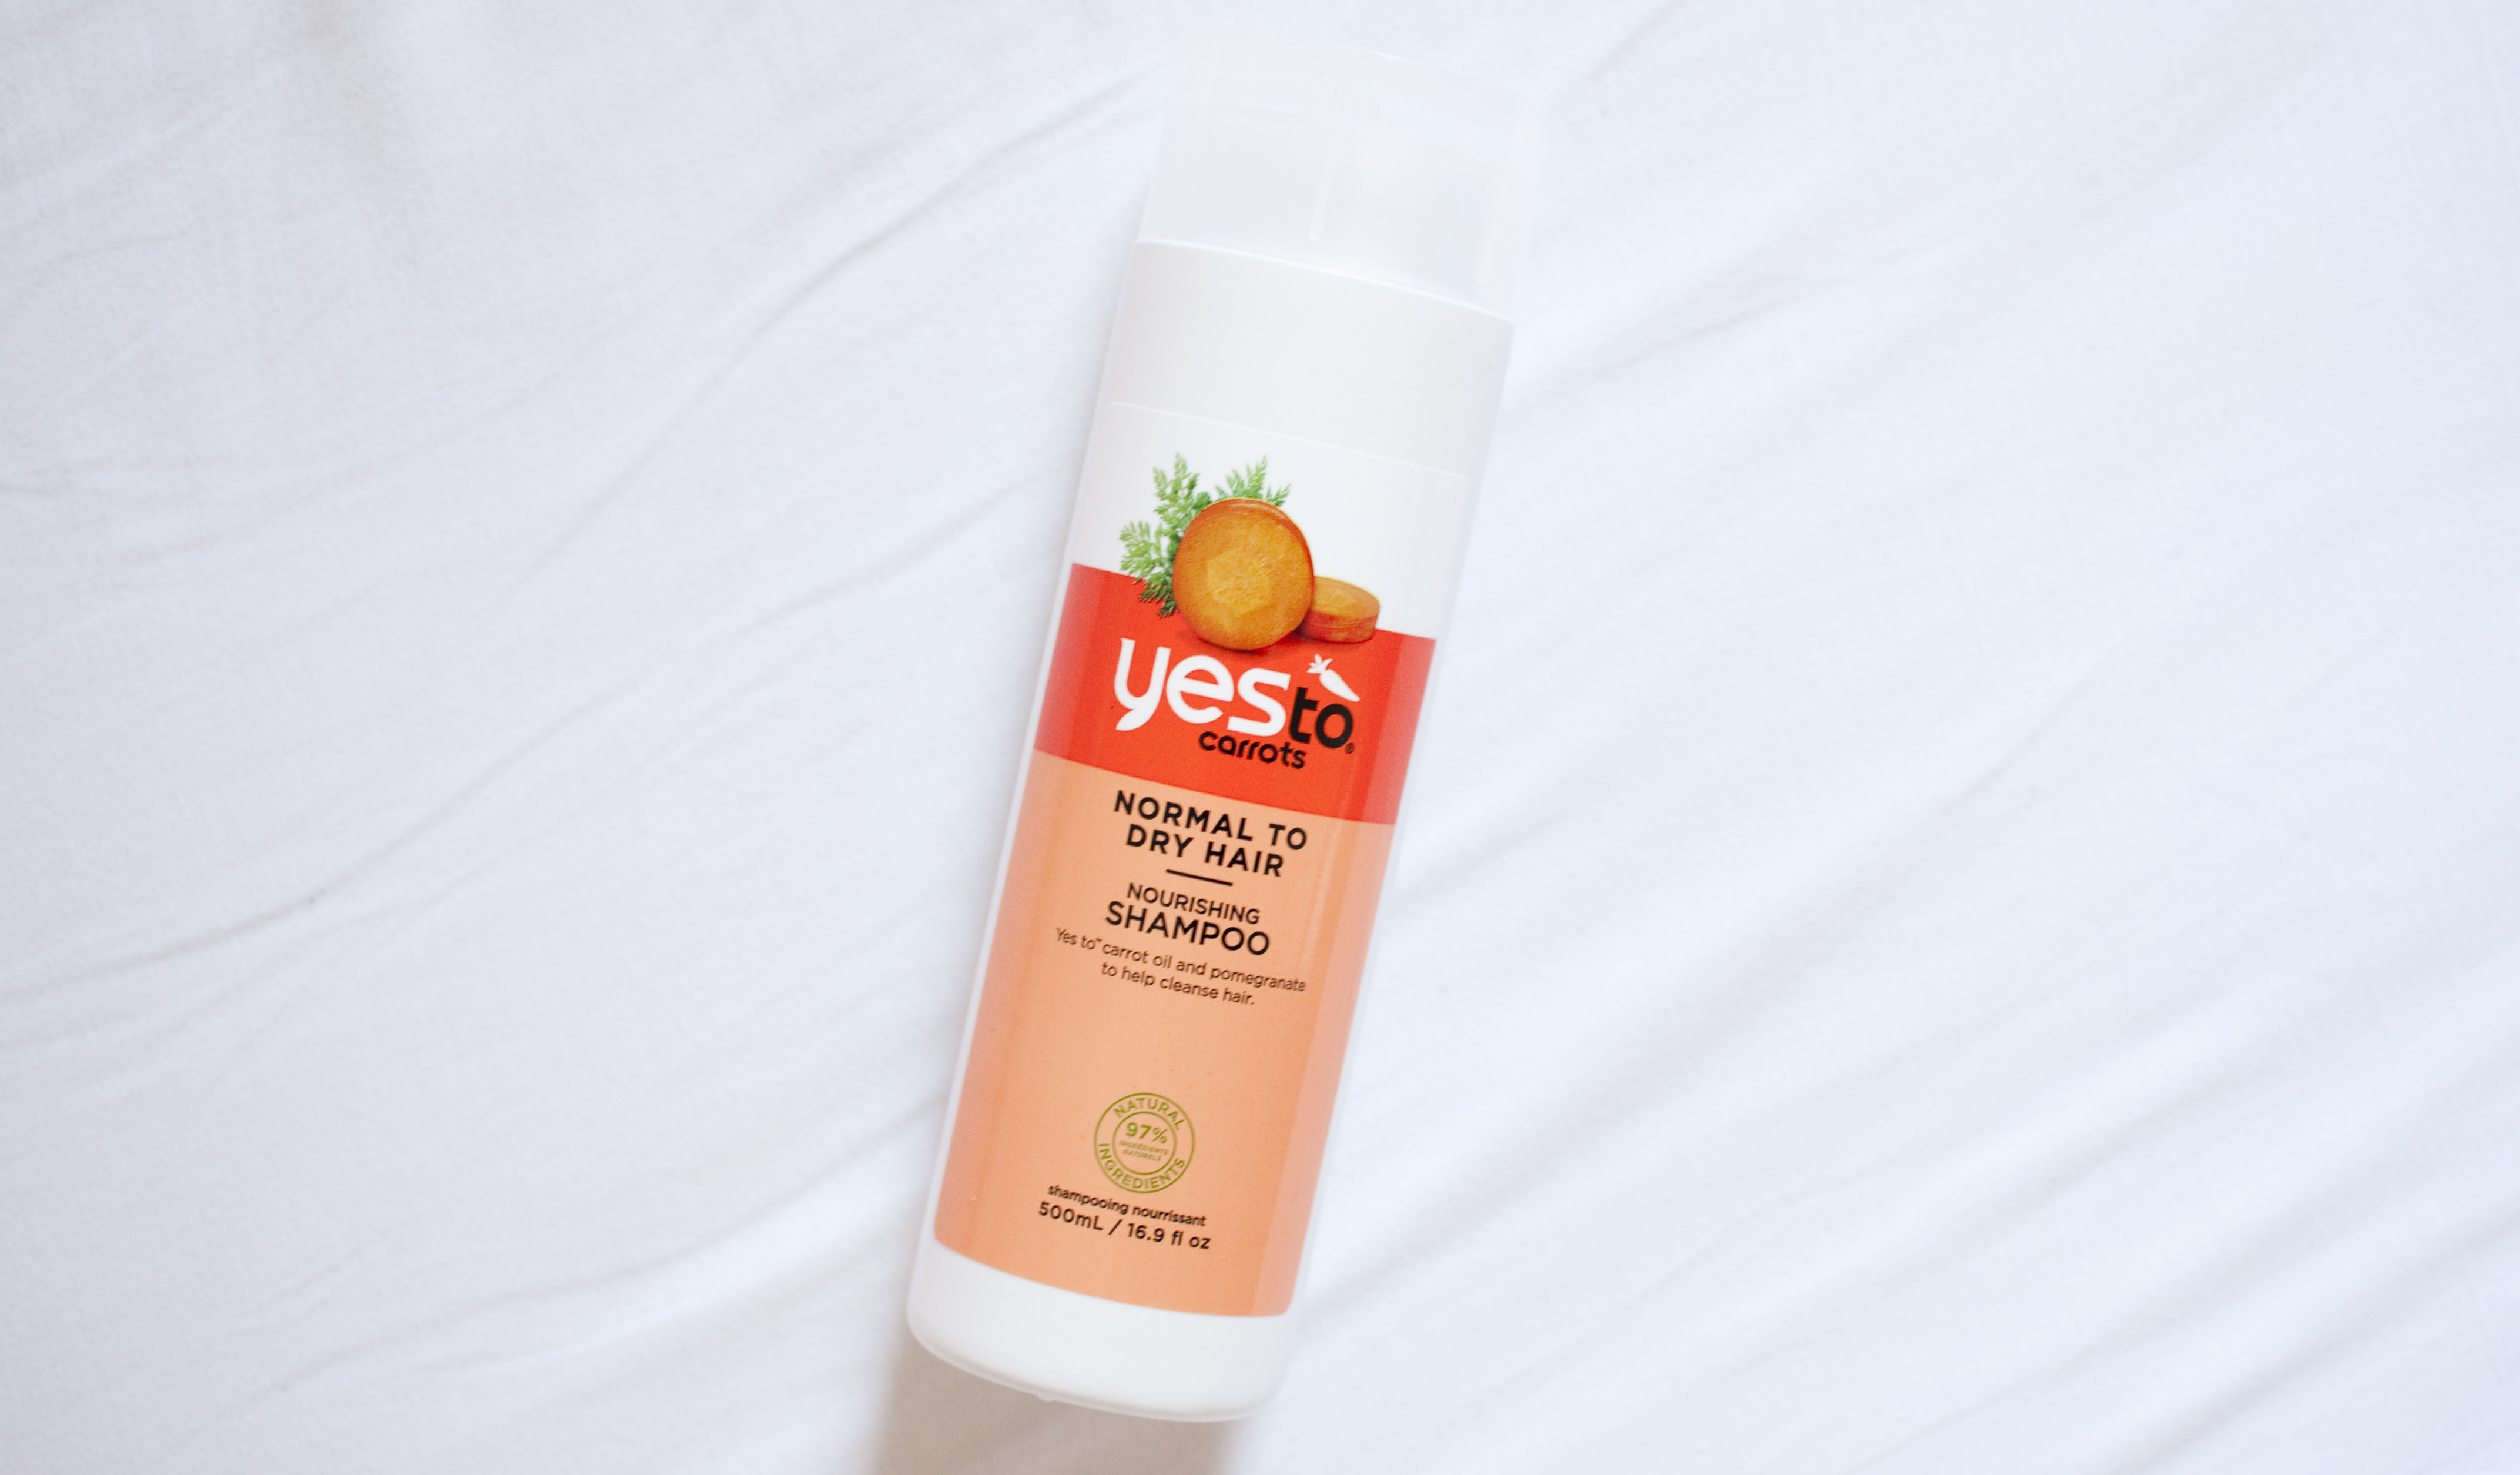 Yes shampoo review